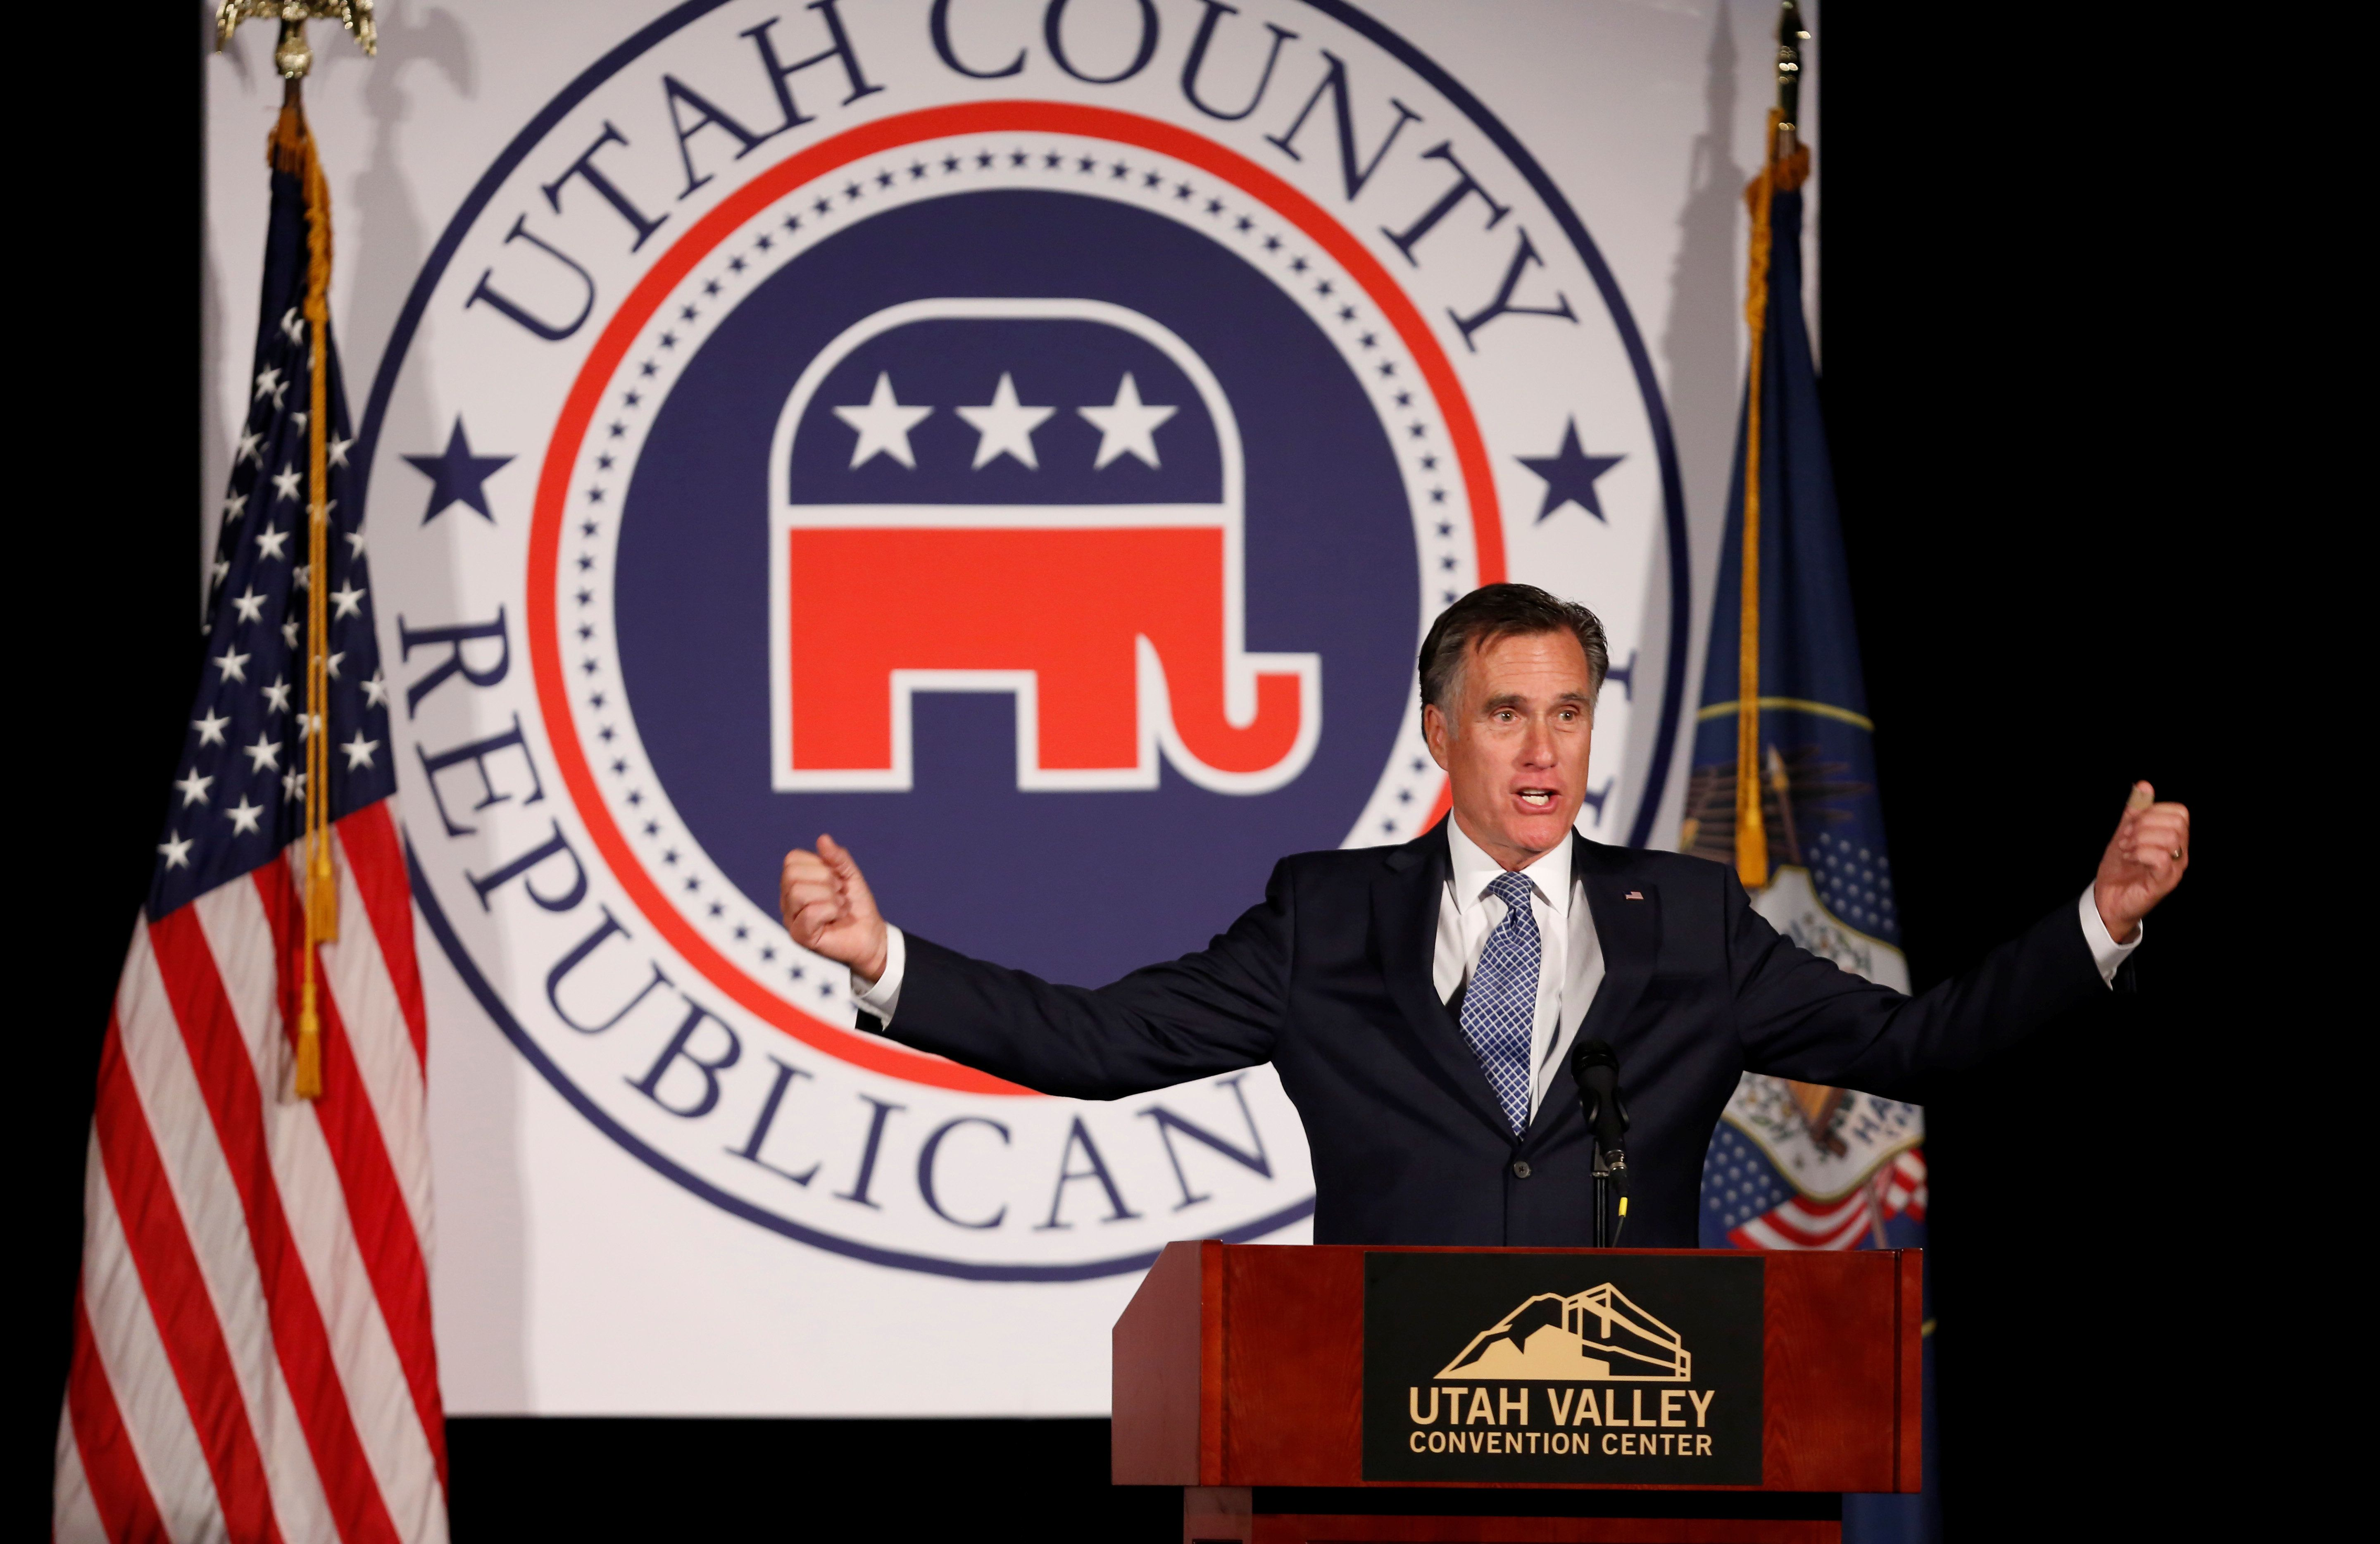 Former U.S. presidential candidate Mitt Romney speaks at the Utah County Republican Party Lincoln Day Dinner, in Provo, Utah, U.S. February 16, 2018.  REUTERS/Jim Urquhart